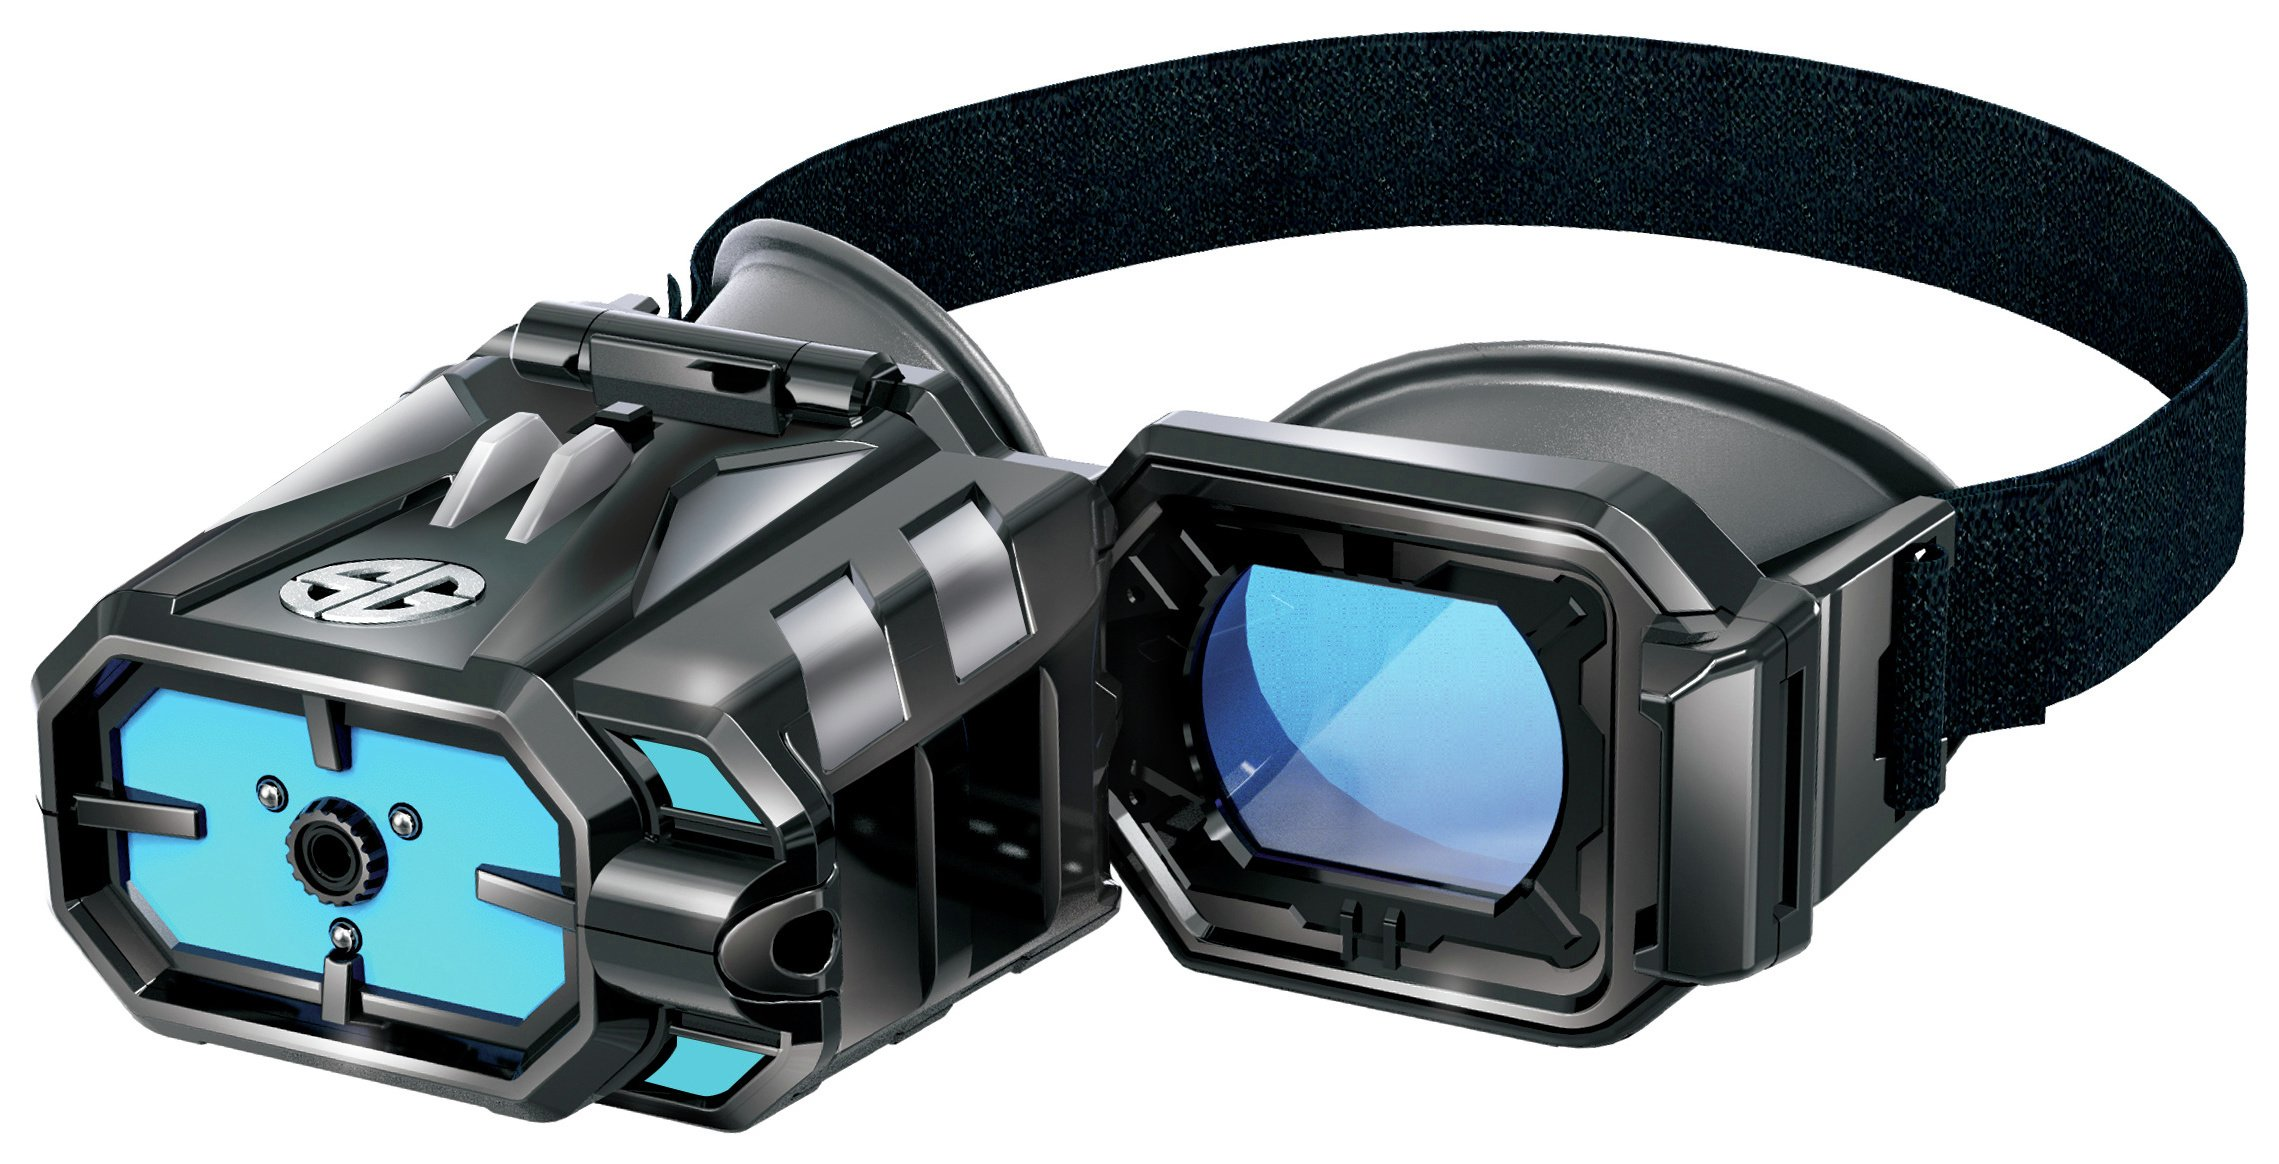 057c371d0 Spy Gear Ultimate Night Vision Goggles (7248047) | Argos Price Tracker |  pricehistory.co.uk